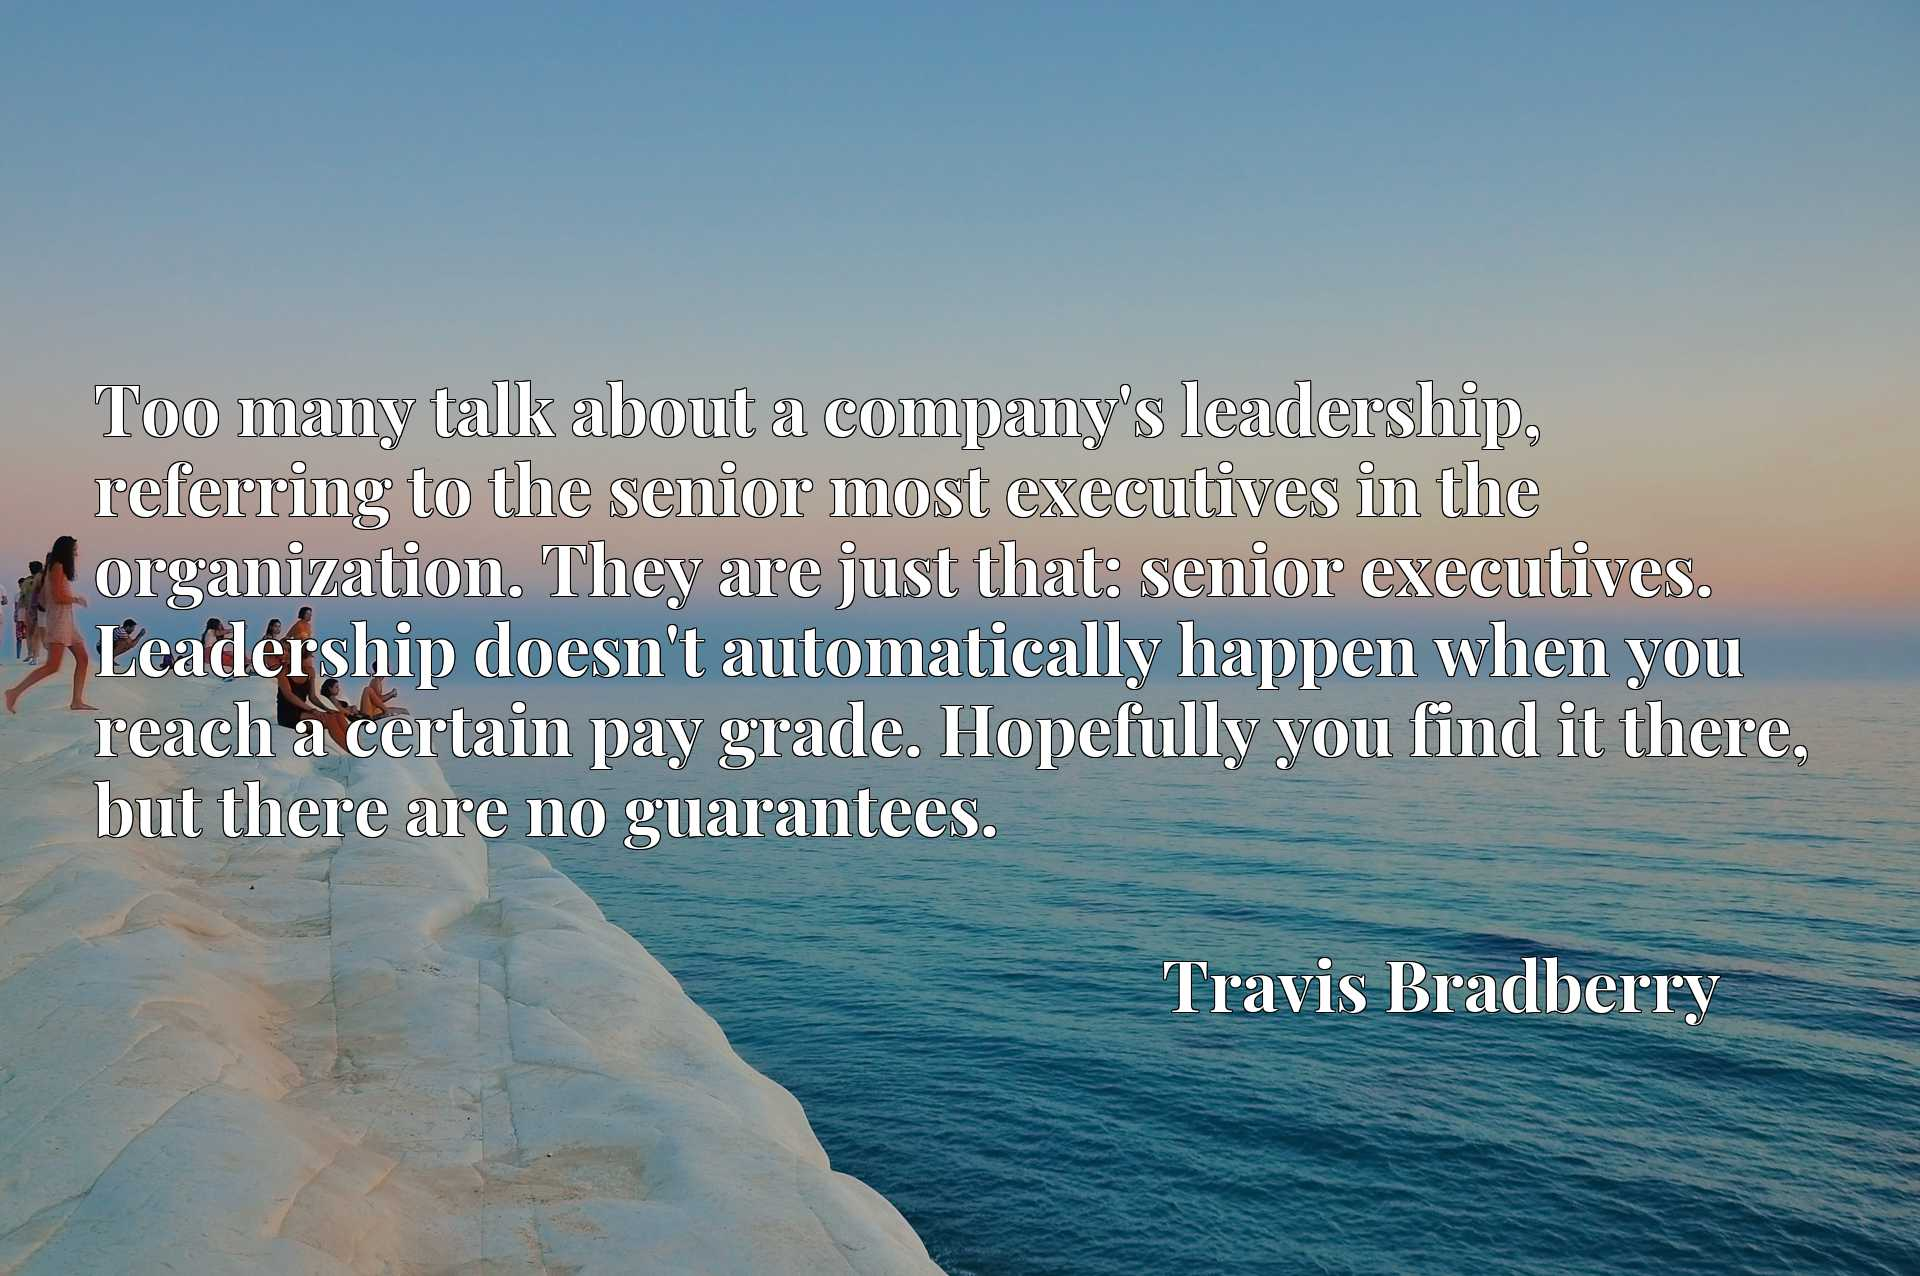 Quote Picture :Too many talk about a company's leadership, referring to the senior most executives in the organization. They are just that: senior executives. Leadership doesn't automatically happen when you reach a certain pay grade. Hopefully you find it there, but there are no guarantees.